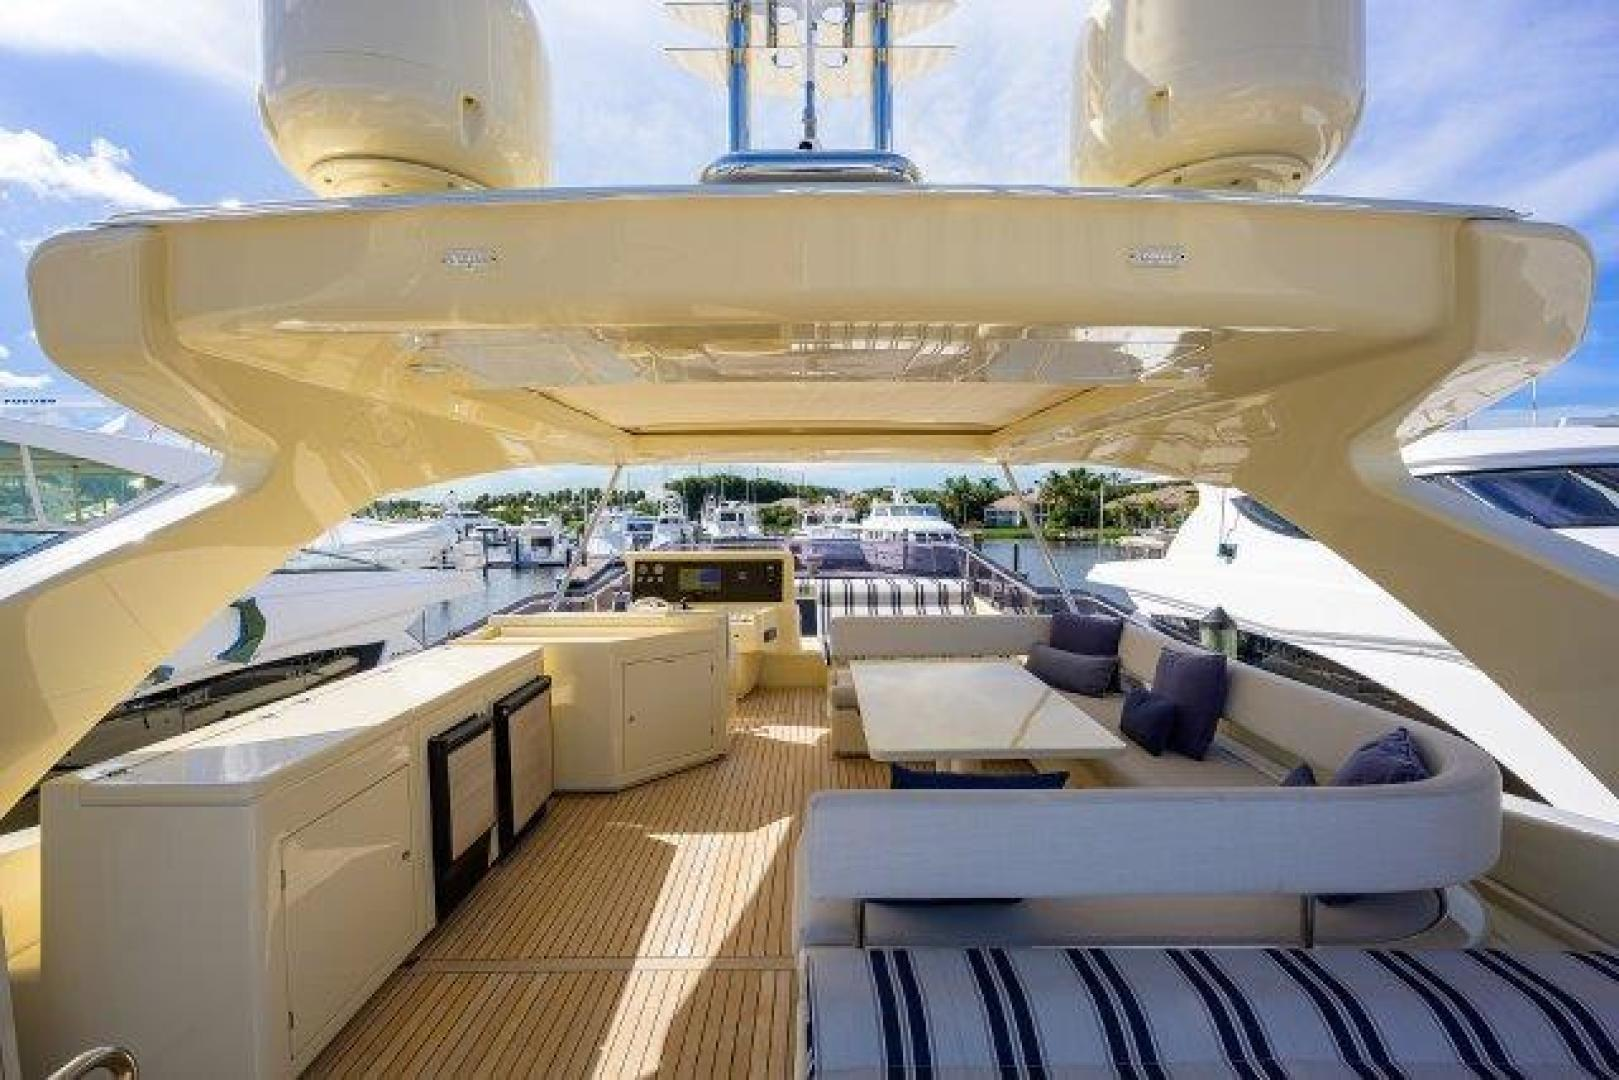 Ferretti Yachts-Altura 840 2010-MISS ALLIED Jupiter-Florida-United States-Bridge Deck-1518345 | Thumbnail